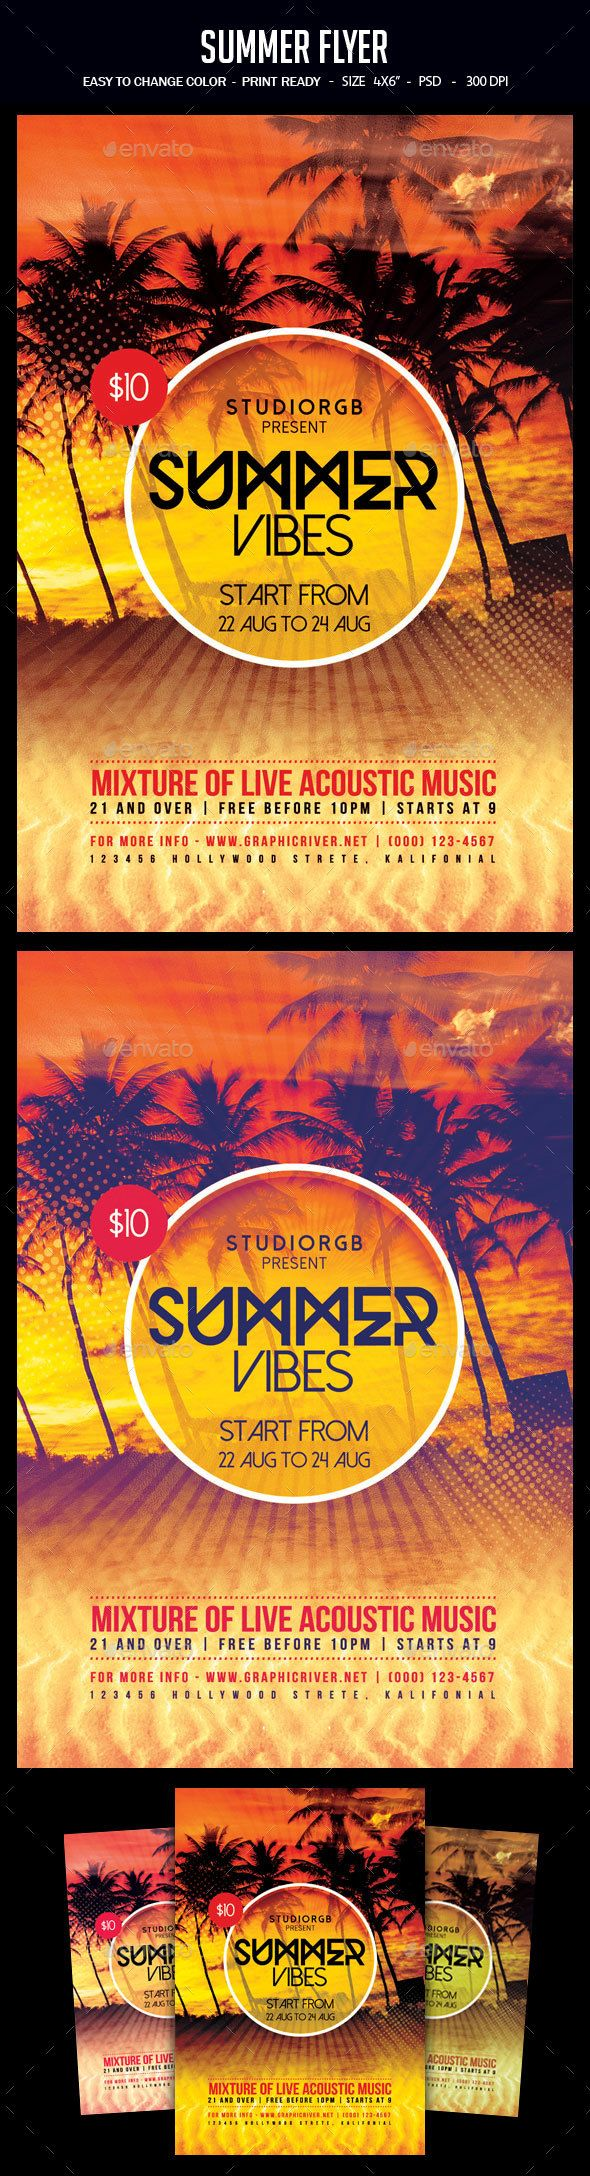 Best Summer Flyer Images On   Party Flyer Event